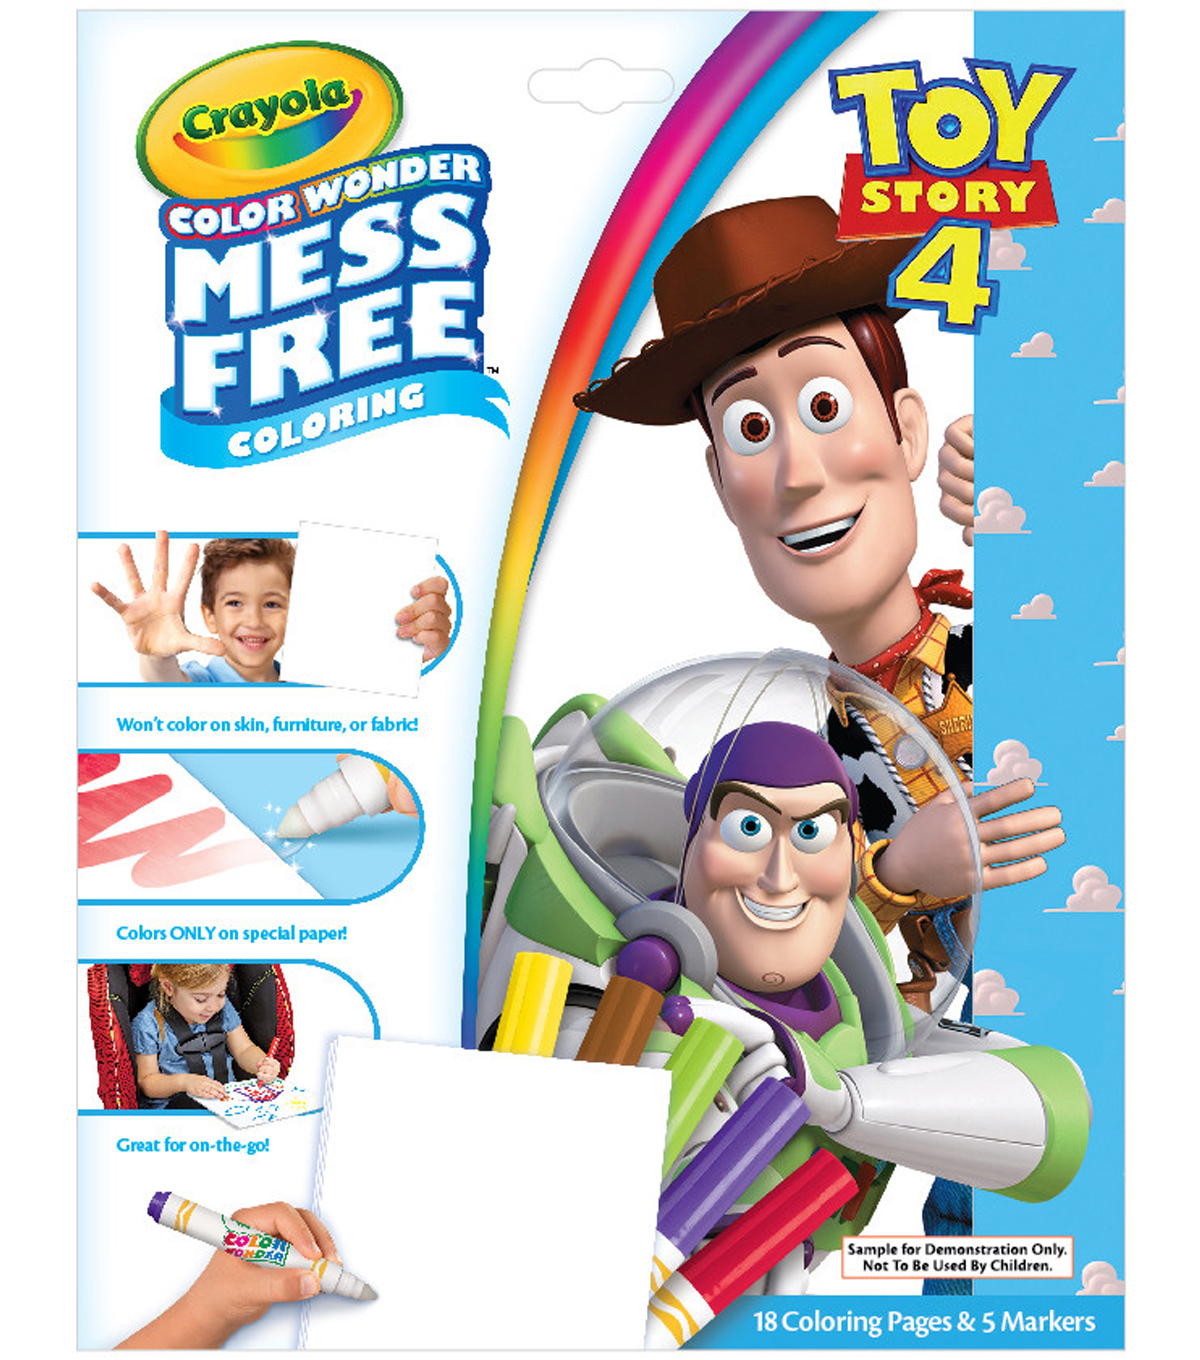 Crayola Color Wonder Mess Free Coloring Book with Markers-Toy Story 4